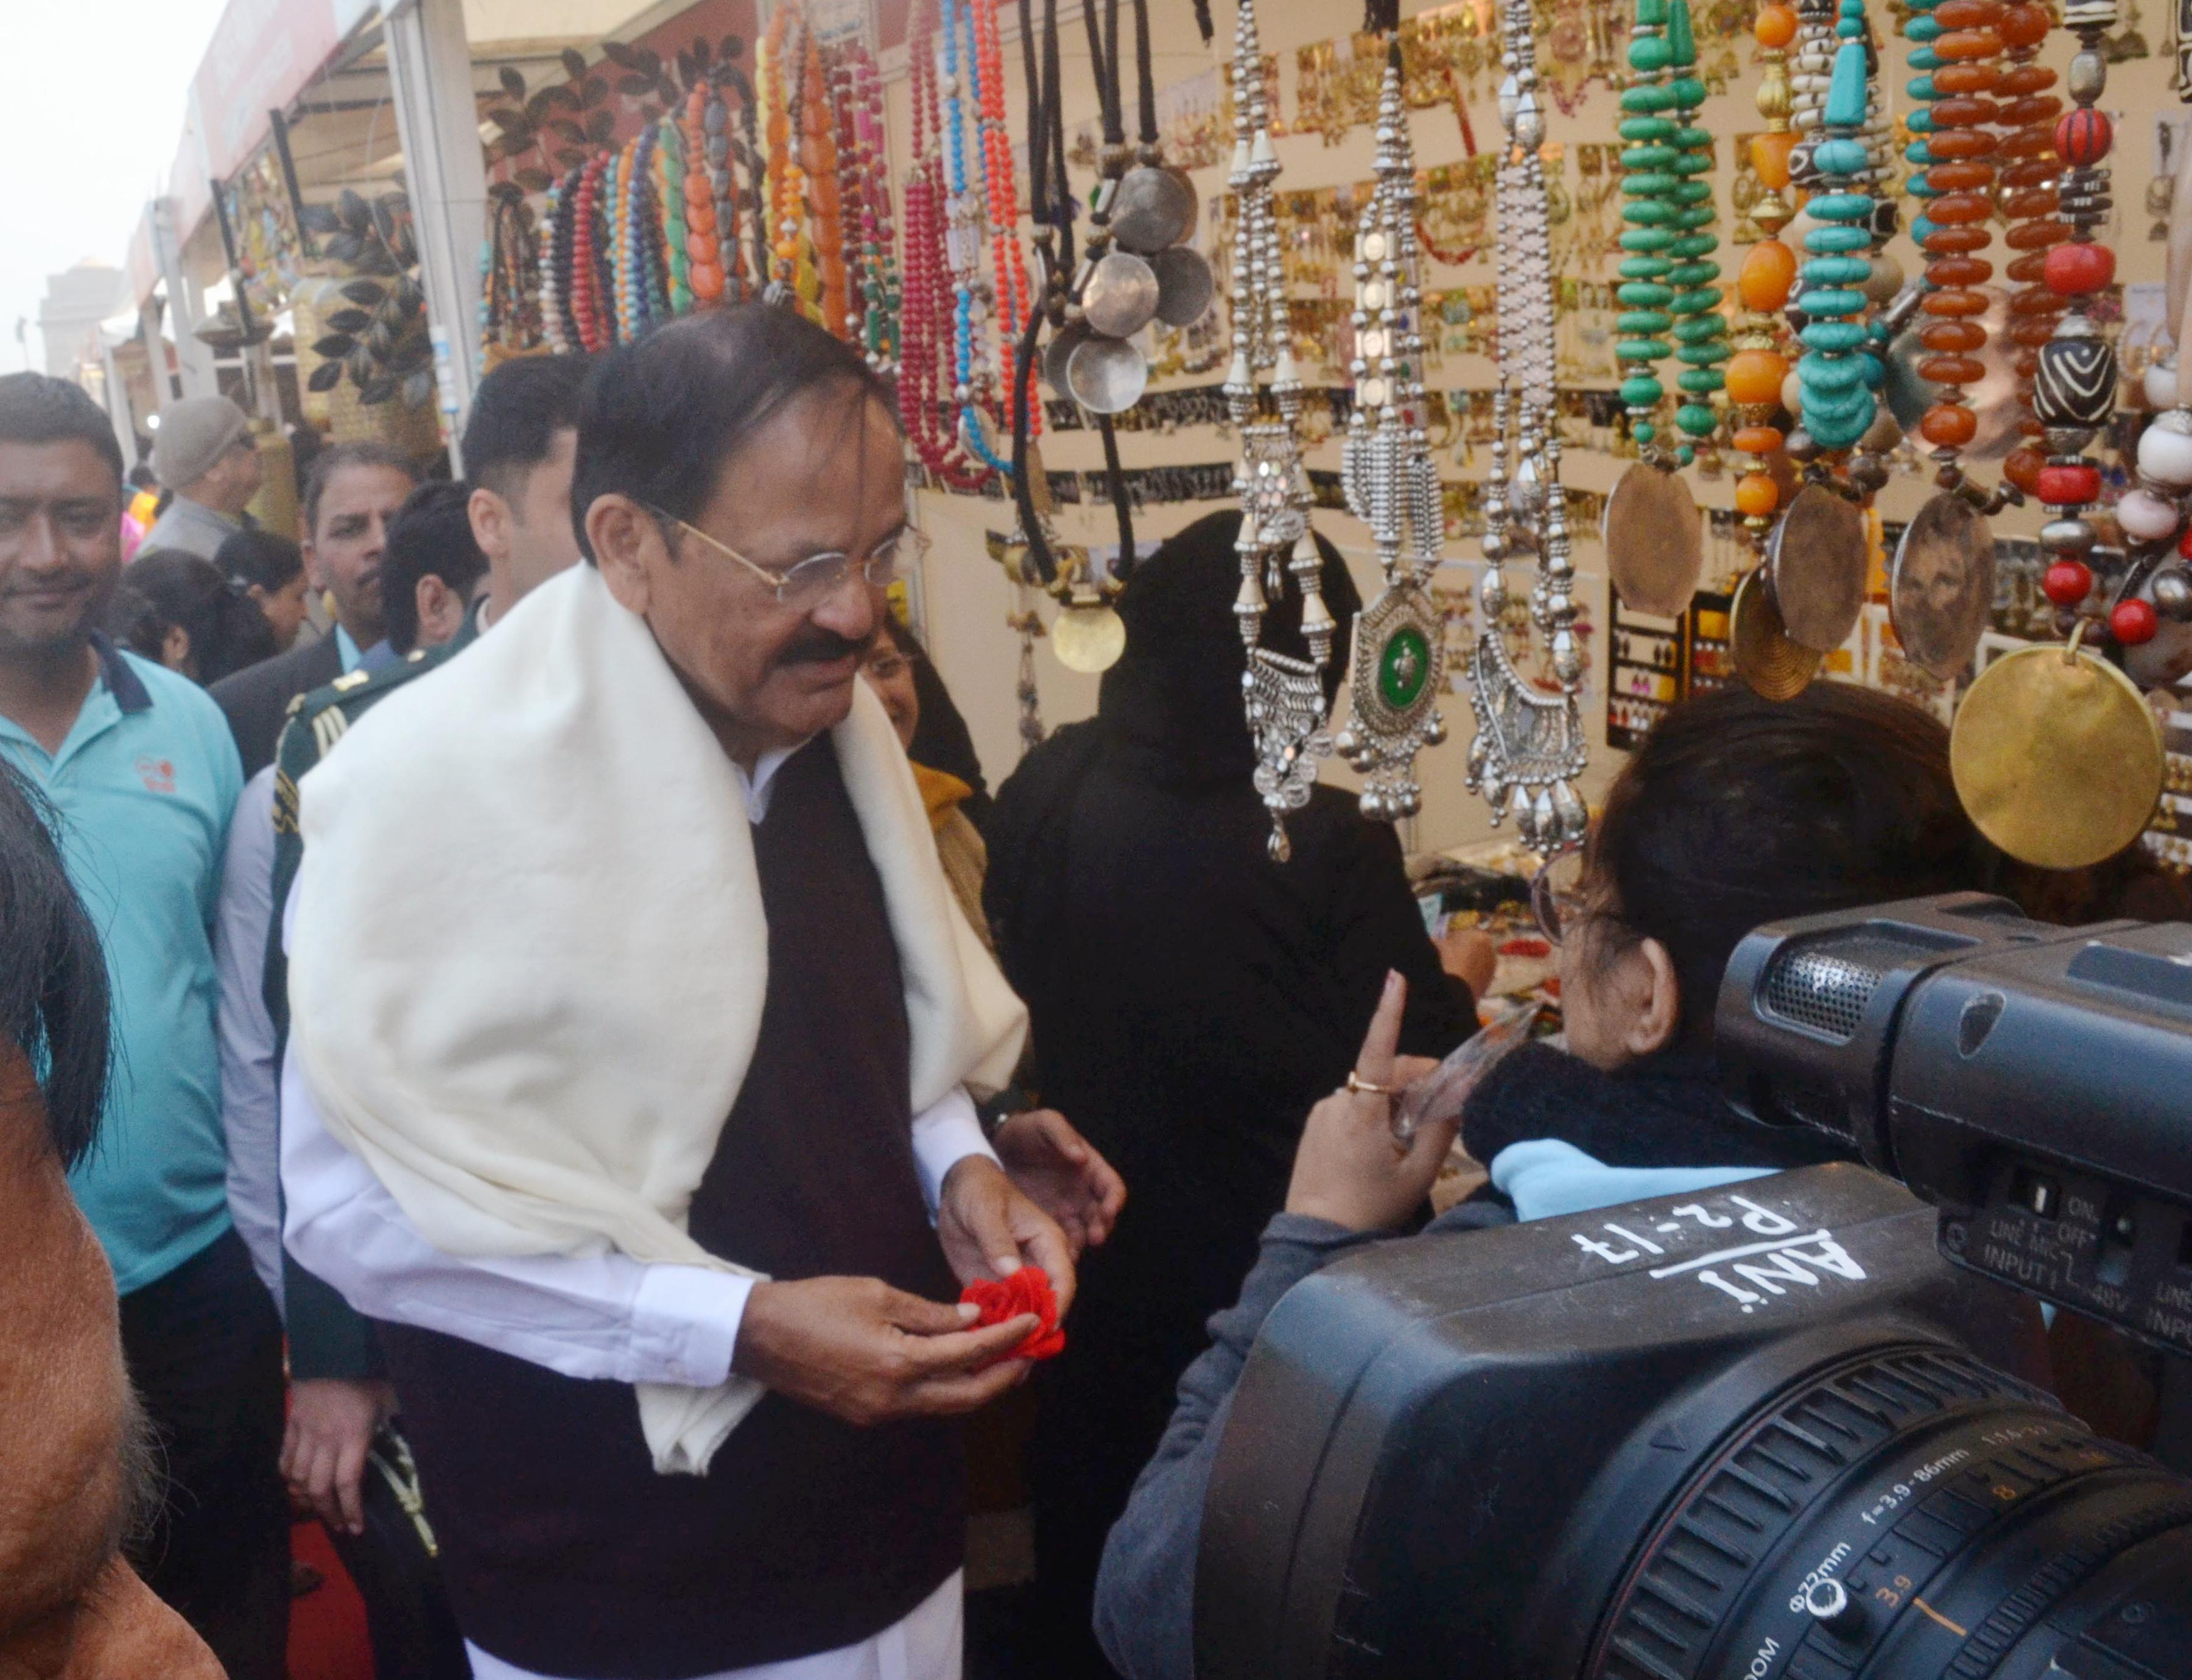 Vice President M Venkaiah Naidu visiting ongoing 'Hunar Haat' at India Gate Lawns in New Delhi on Thursday. (UNI)